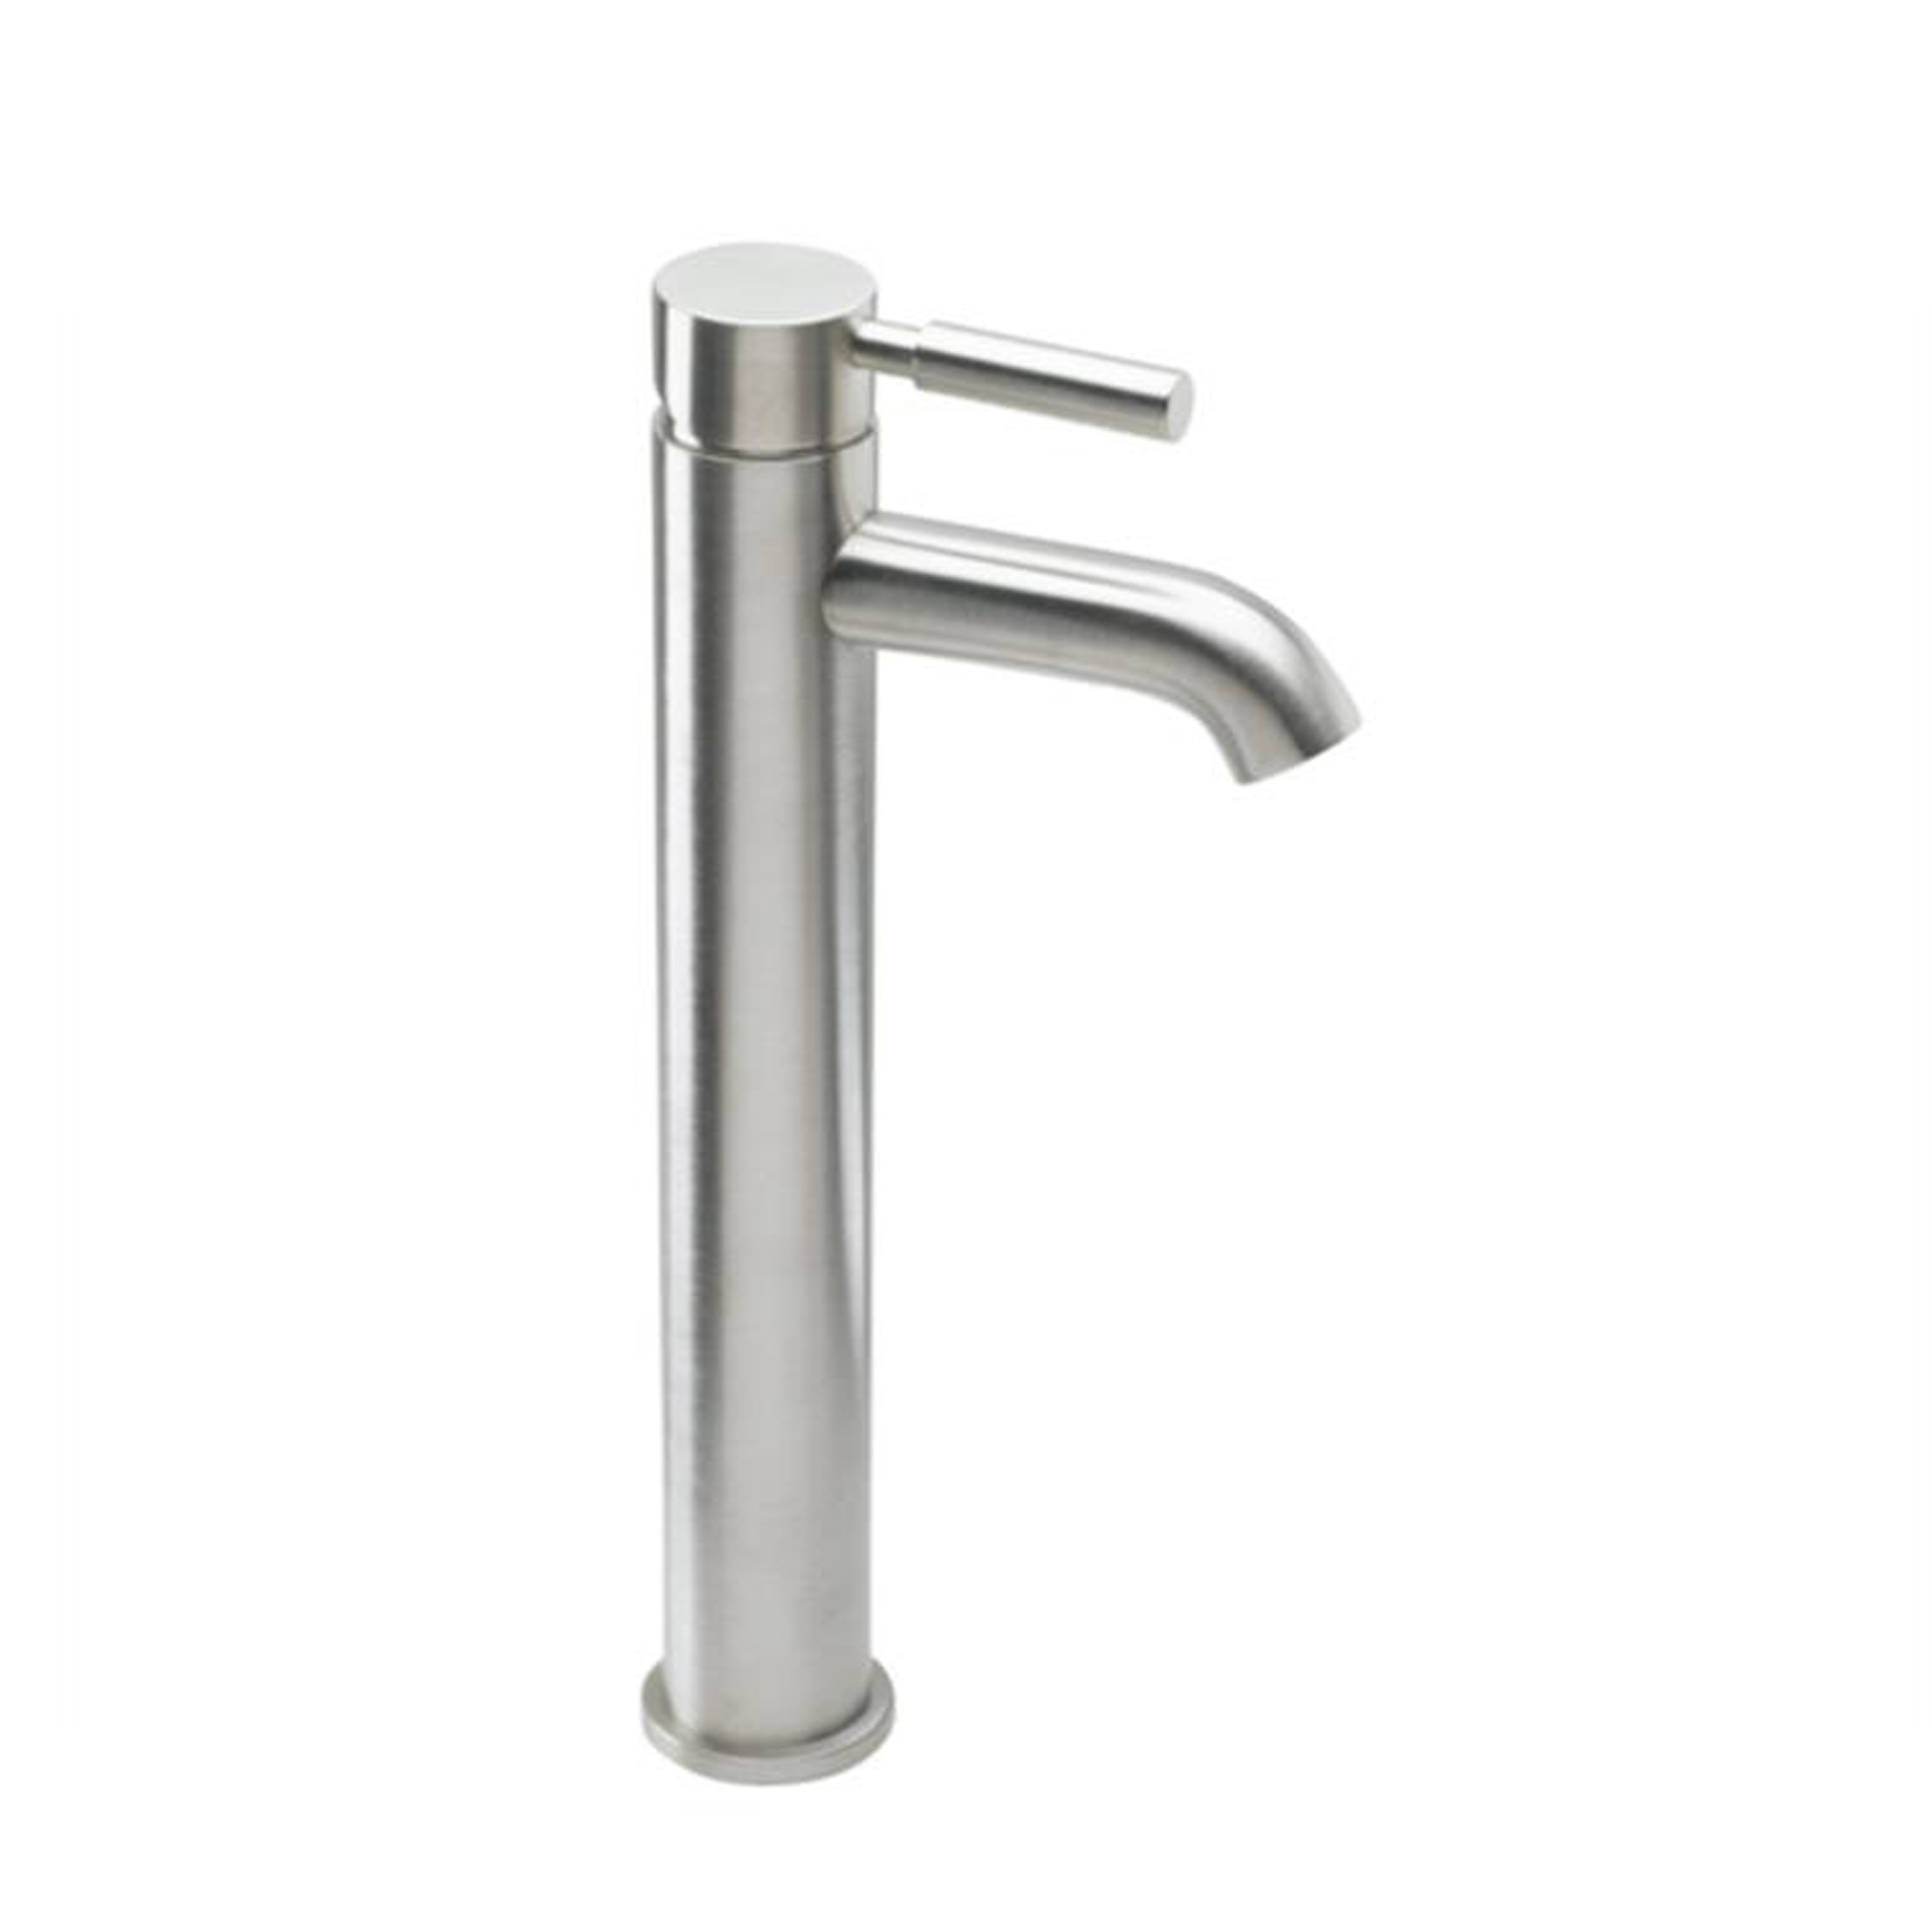 ... One Handle Bathroom Faucet In Brushed Nickel Finish. EVFT297BN_A_Main